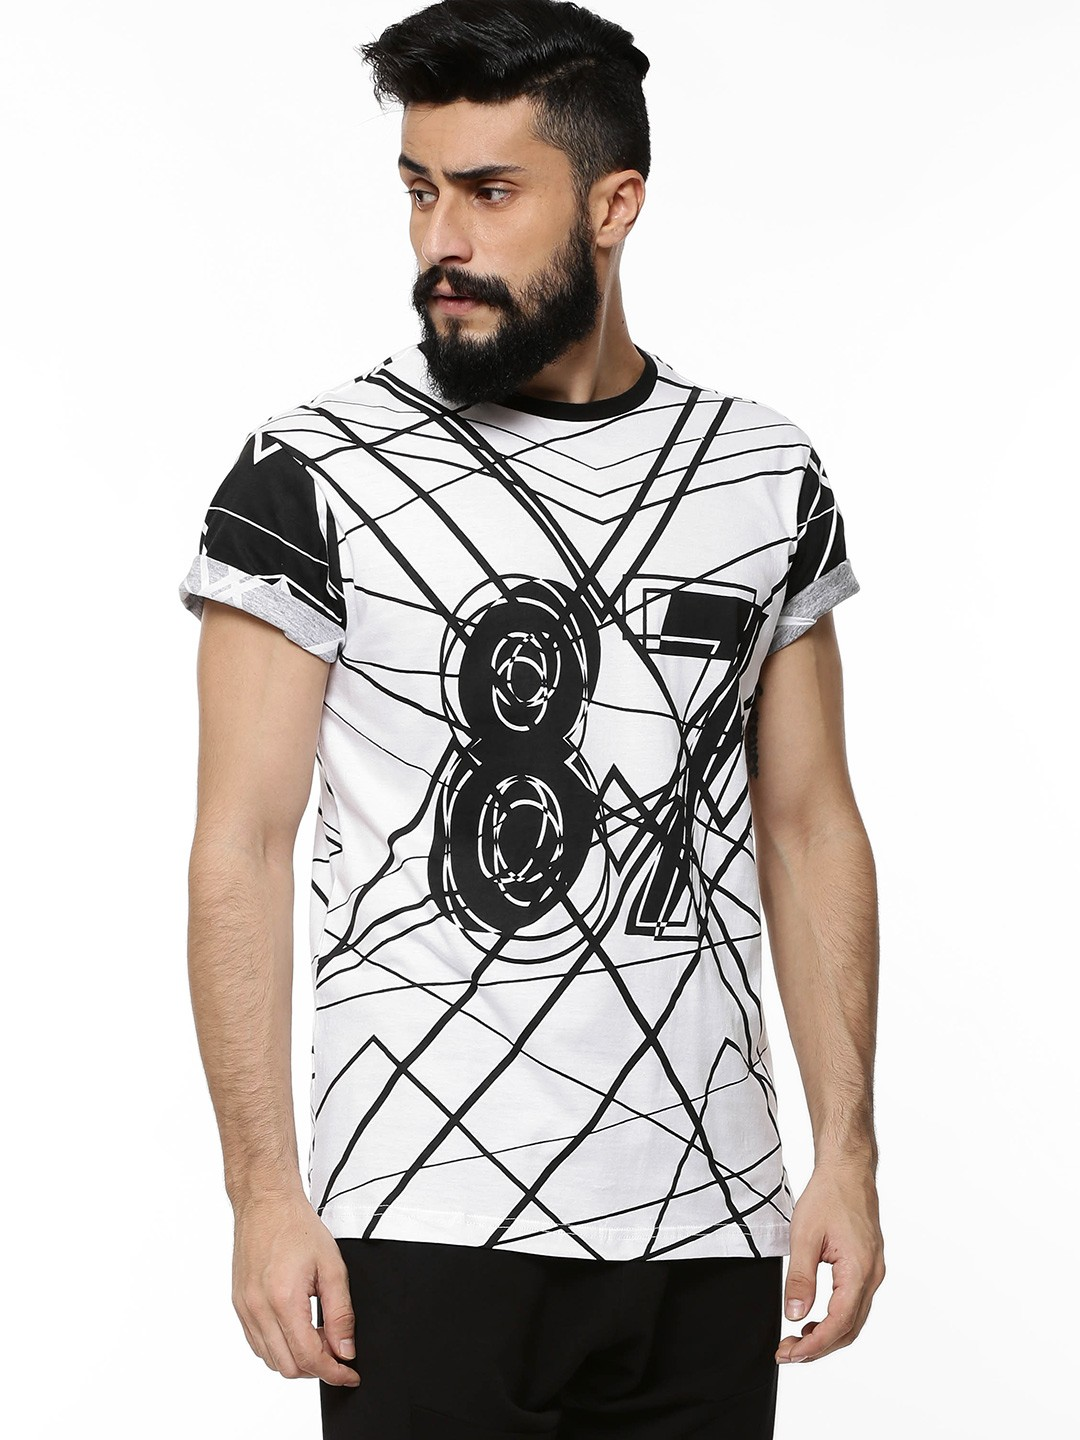 Buy koovs all over printed t shirt for men men 39 s white t for Printed t shirts india